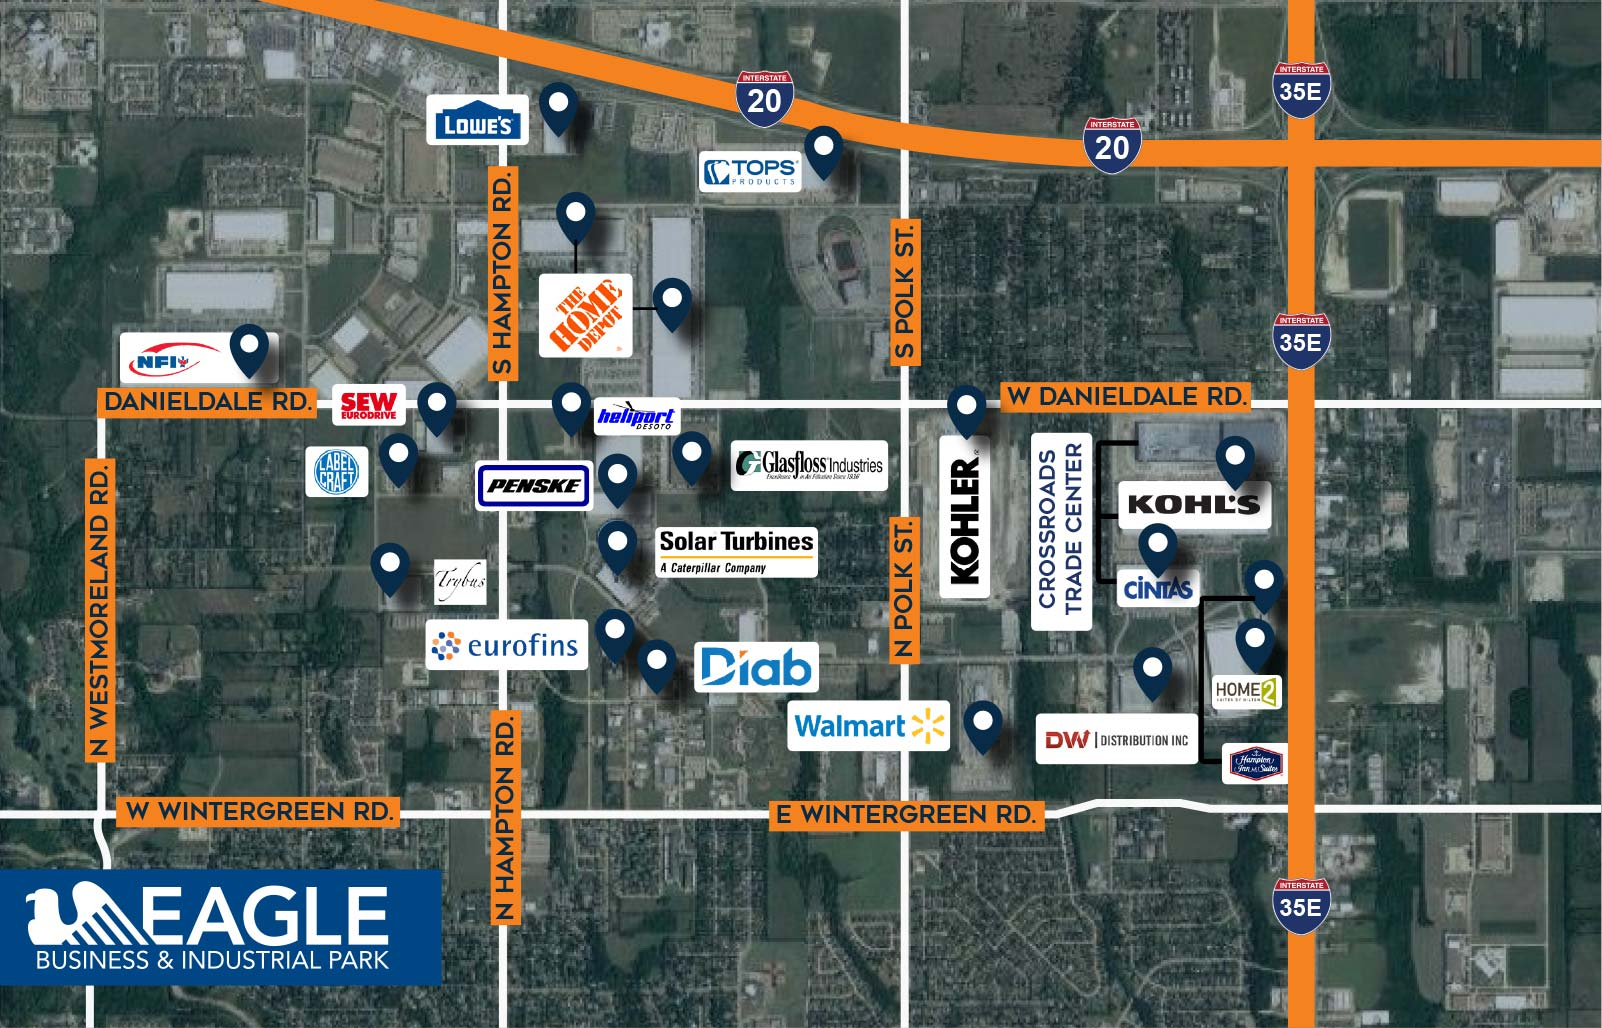 Aerial map of Eagle Business & Industrial Park